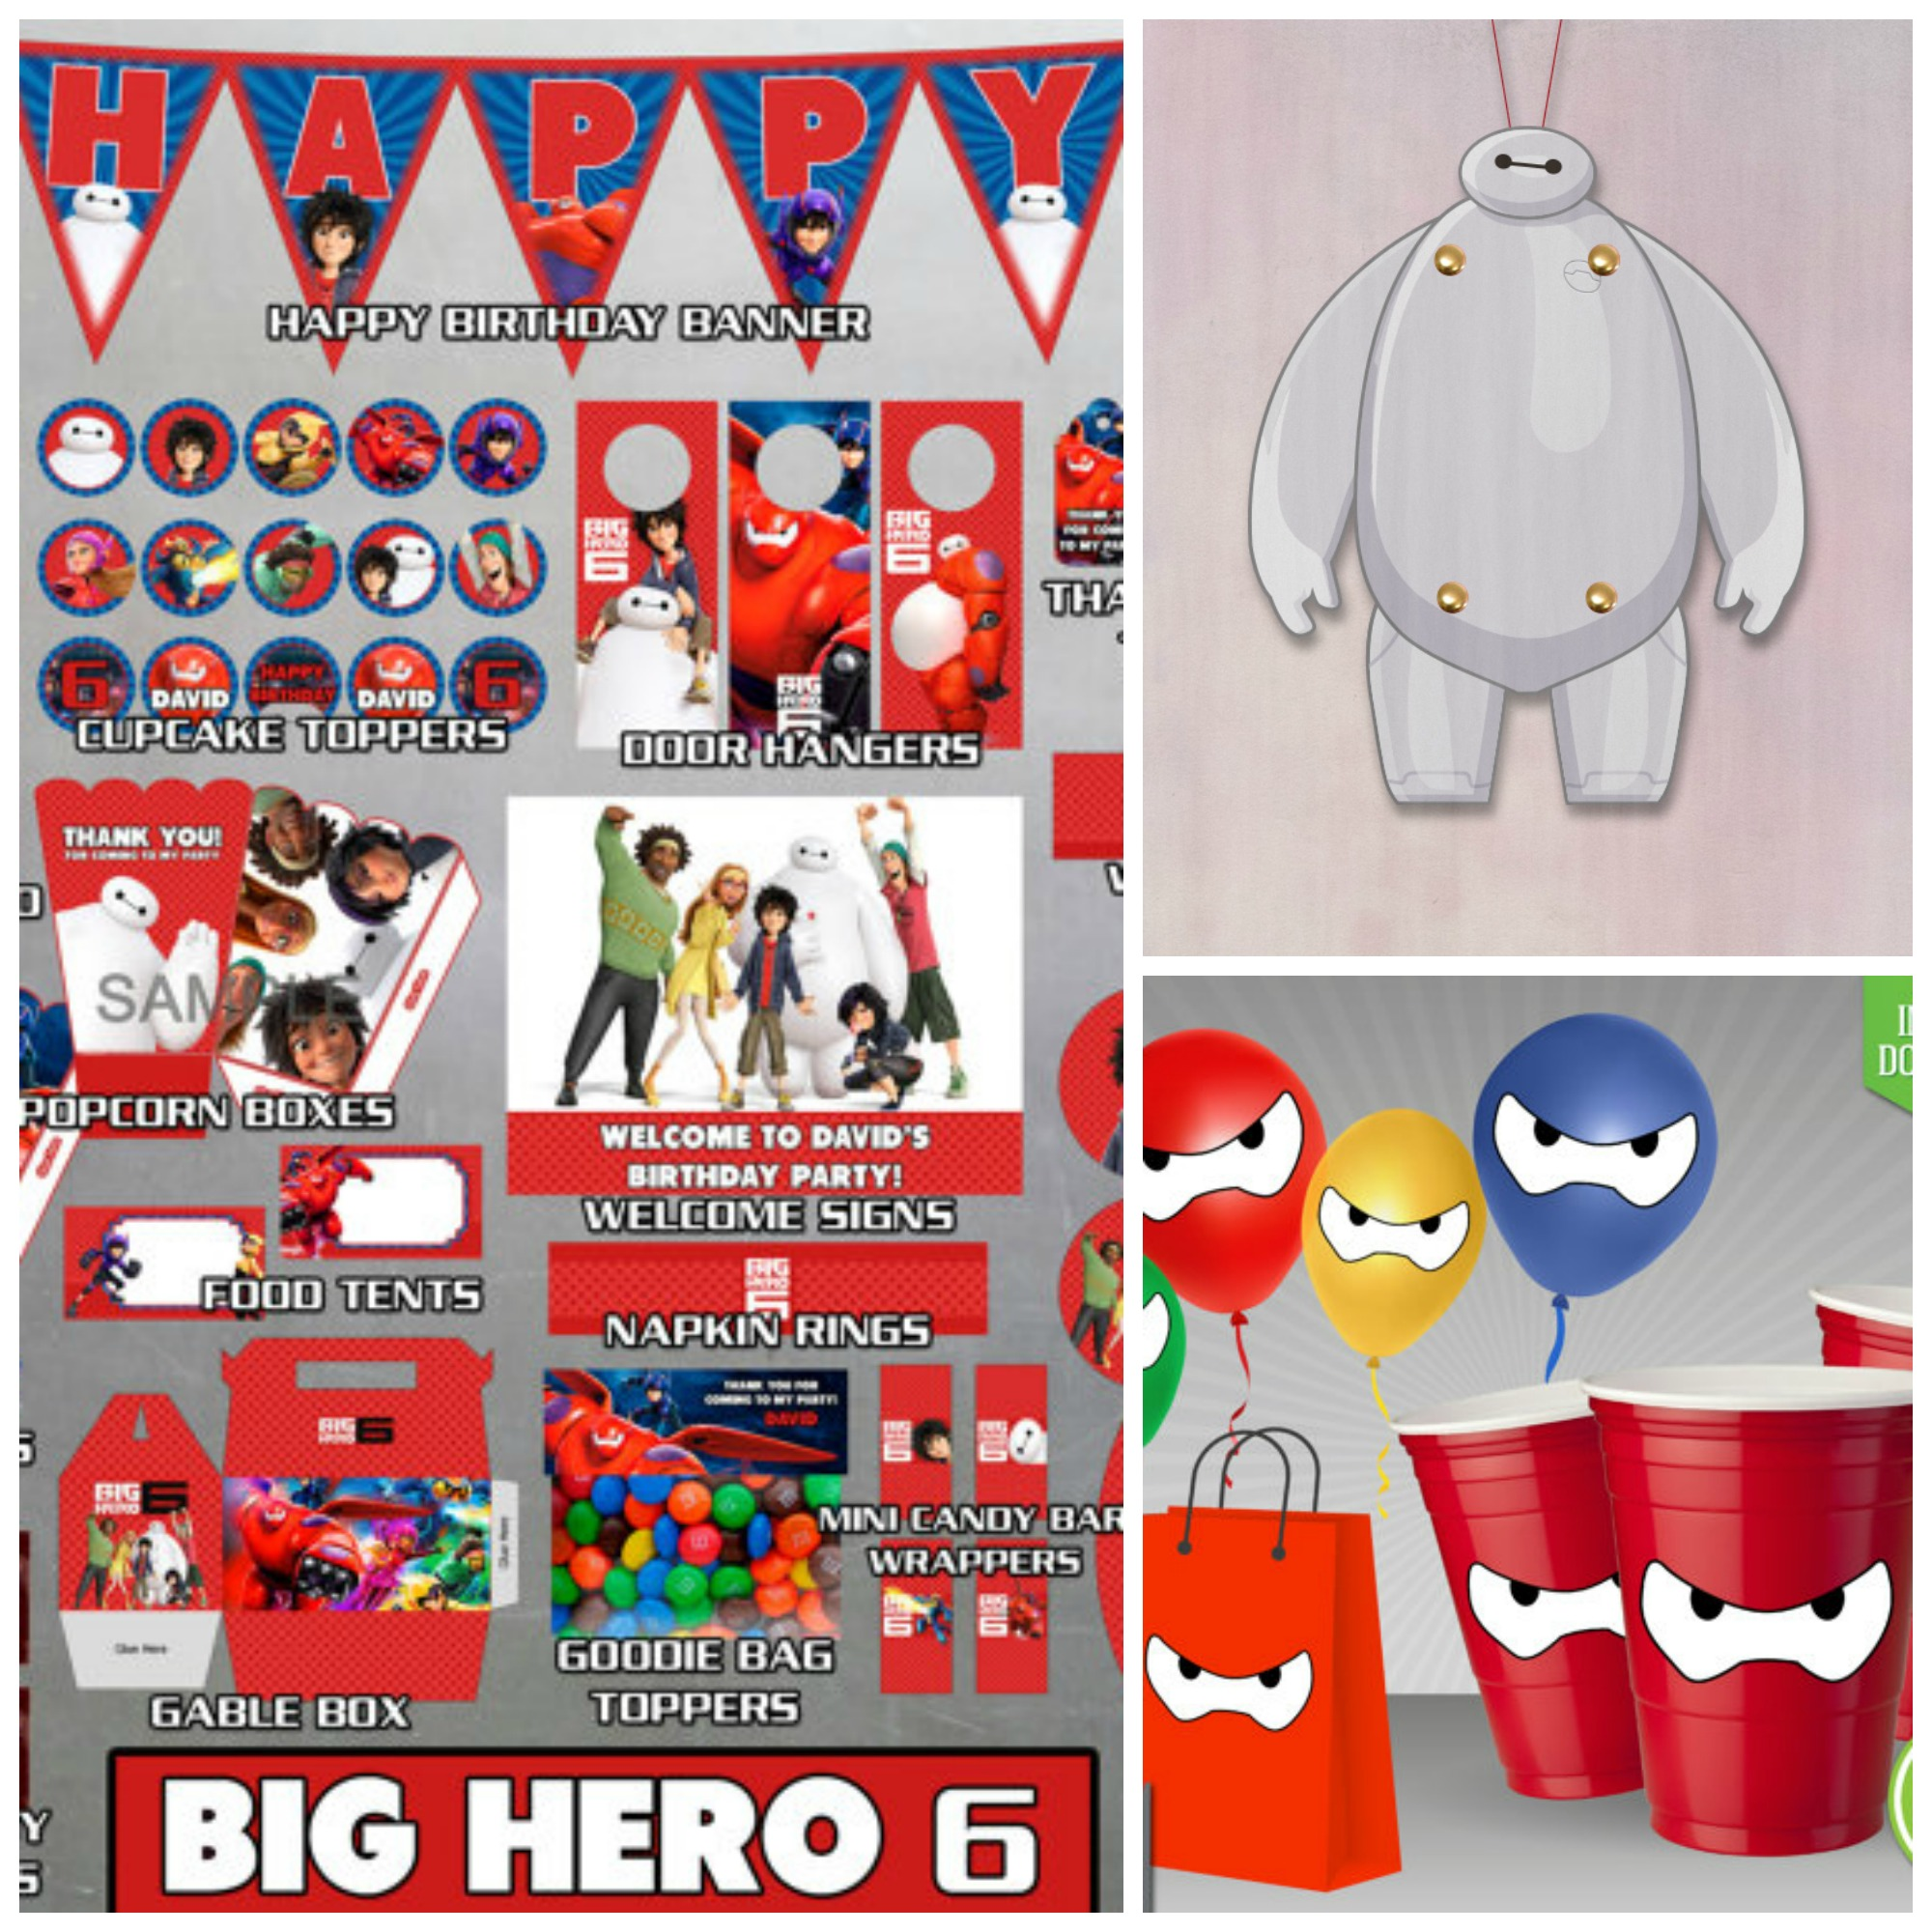 Time To Get Up Some Big Hero 6 Decorations Set The Mood Baymax Eyes Printable From Party